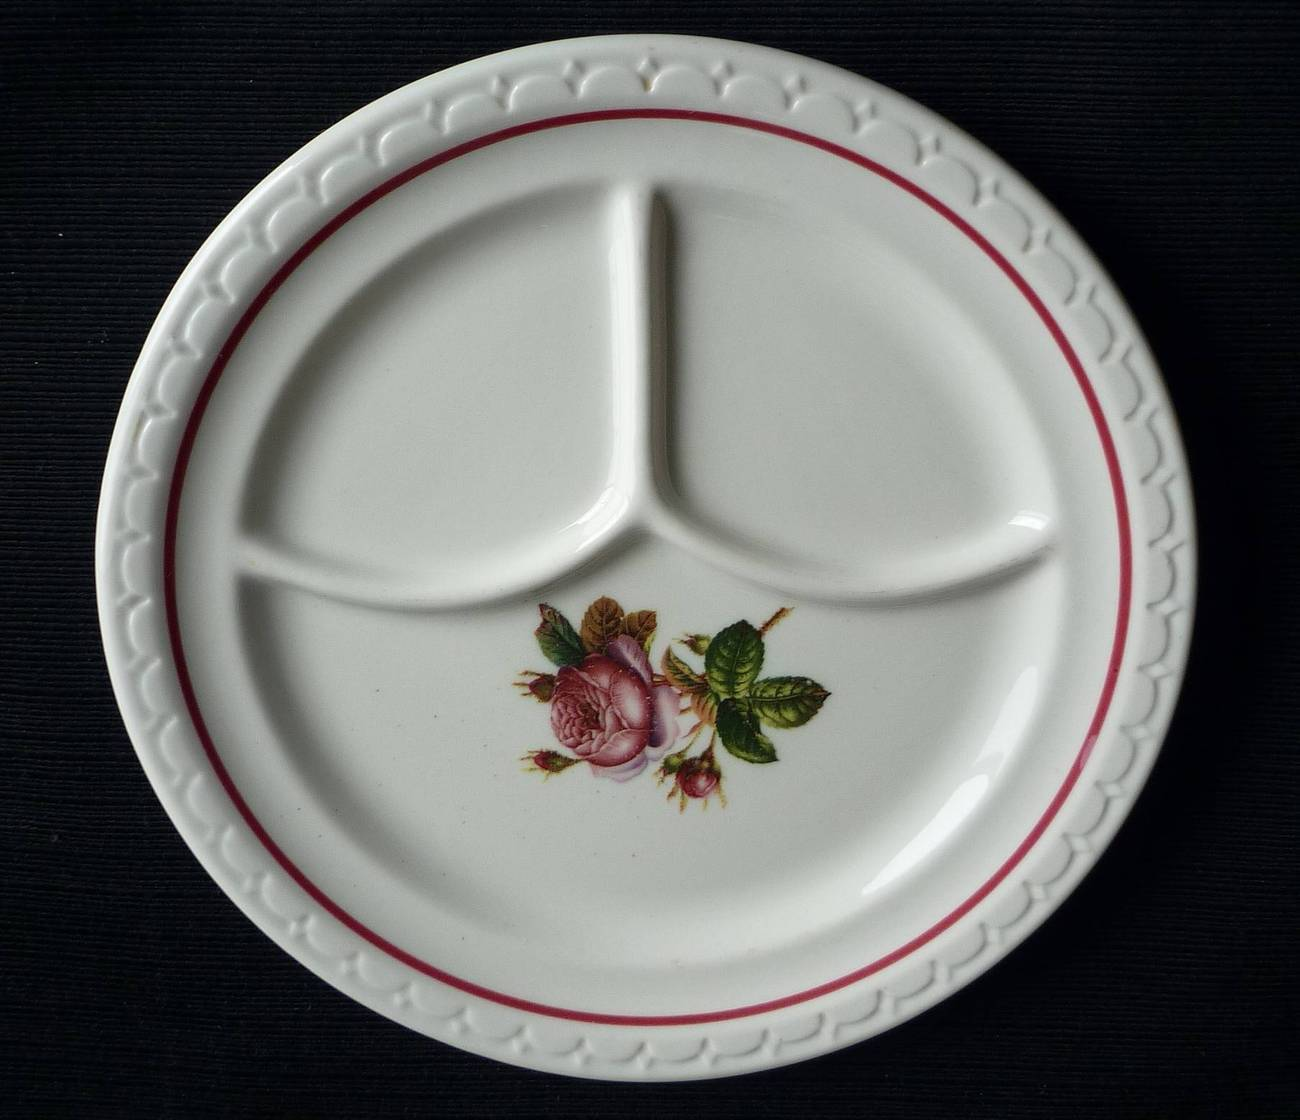 Syr_china_rose_grill_plate_1